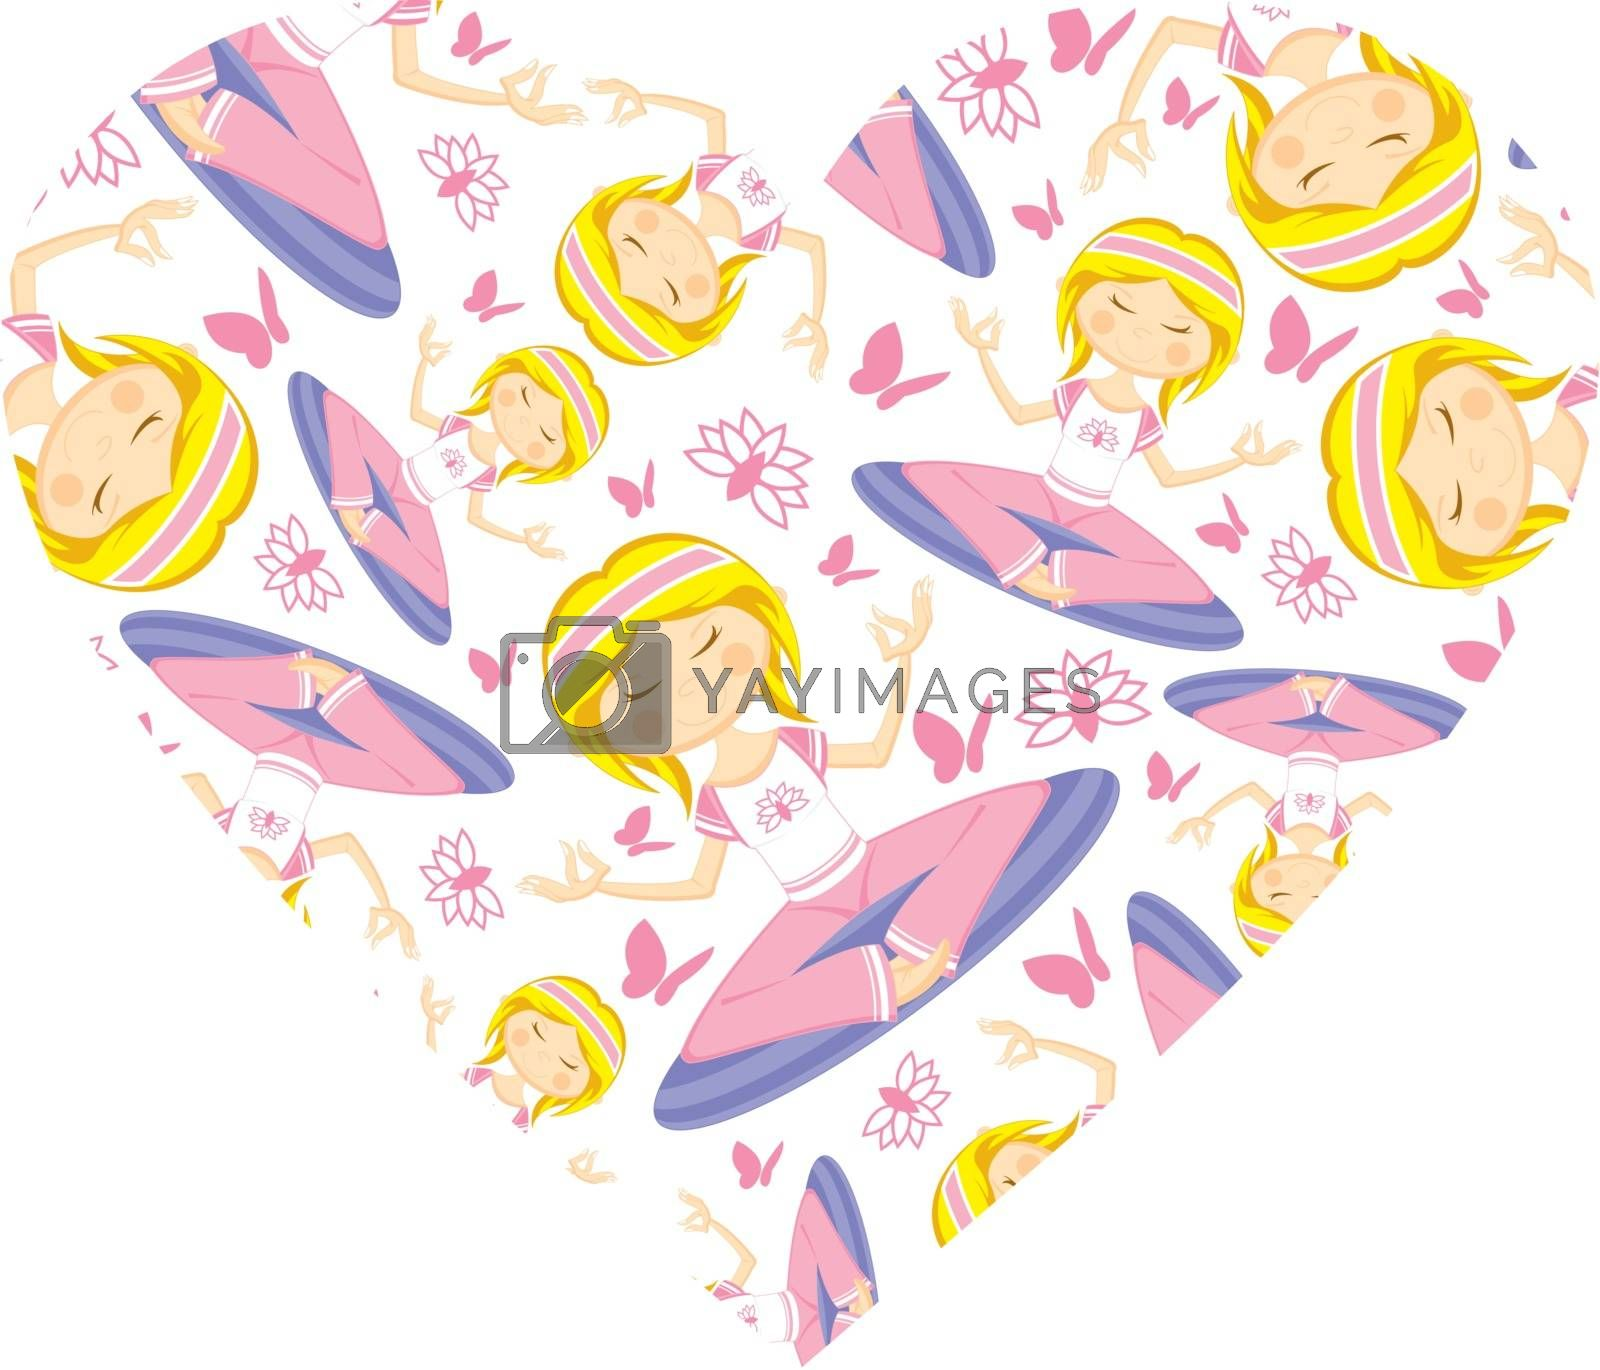 Cute Cartoon Yoga Girl Valentine Heart Pattern Vector Illustration - by Mark Murphy Creative